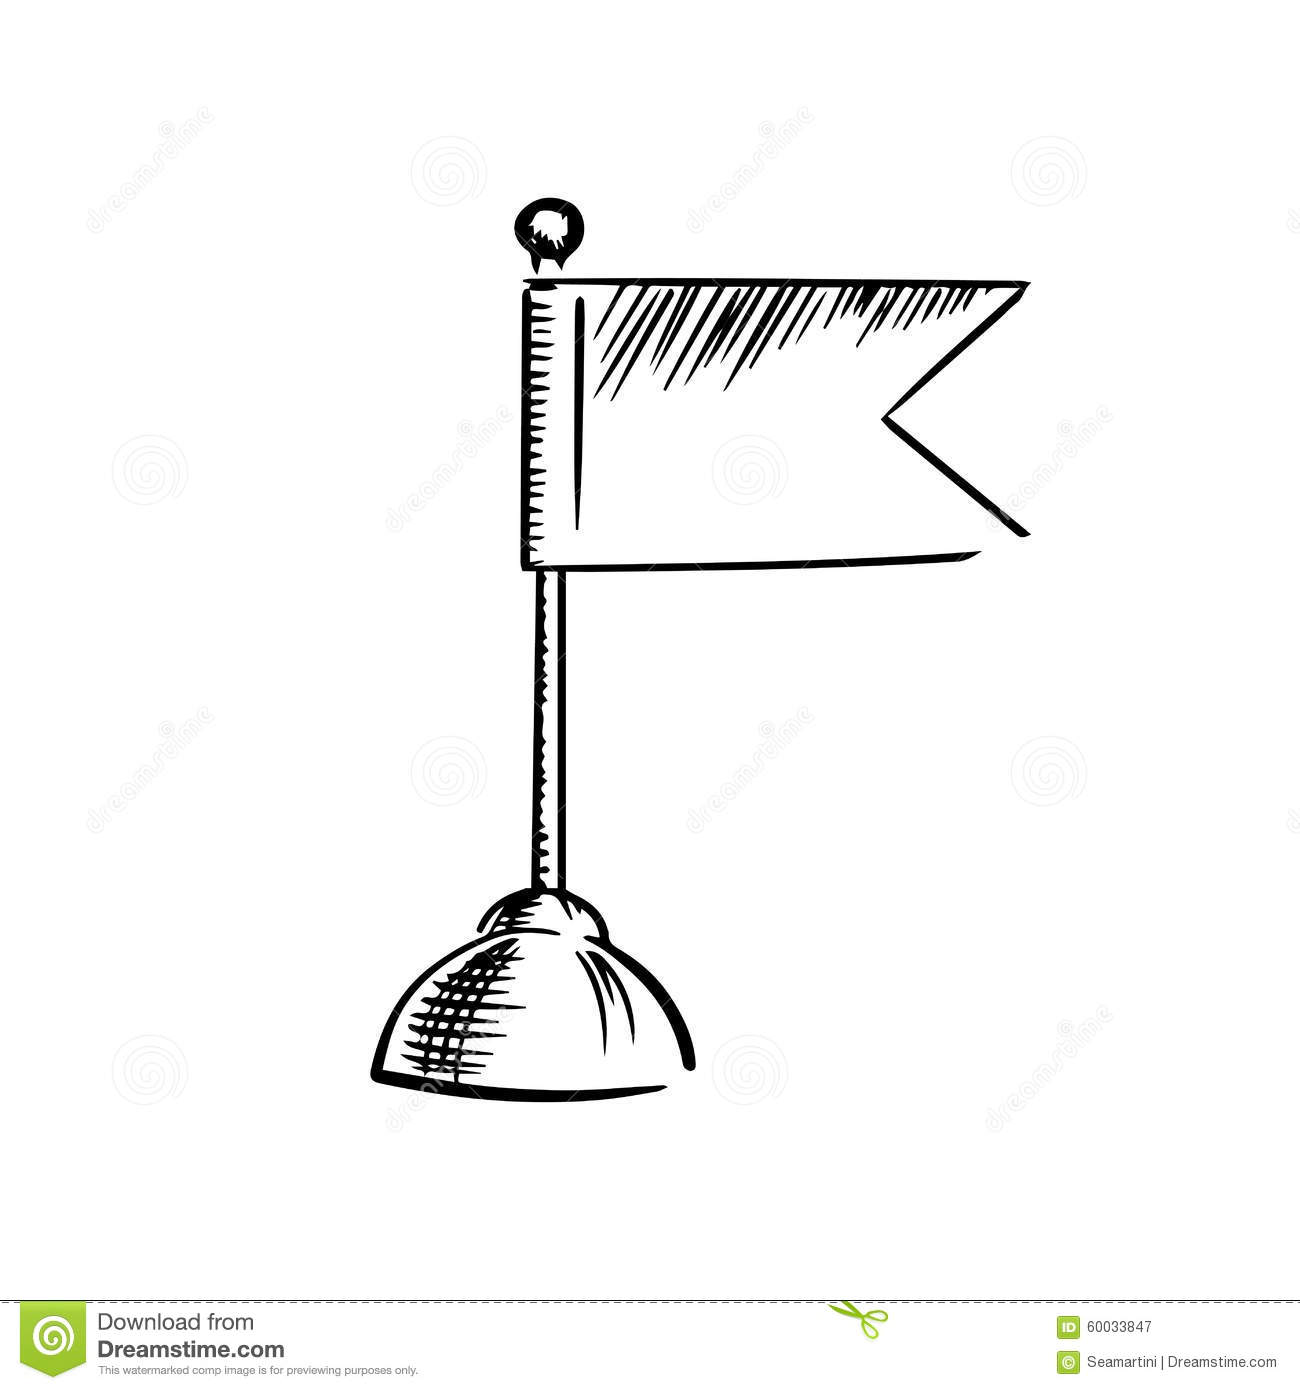 Table flag icon with forked end on heavy round stand, isolated on ...